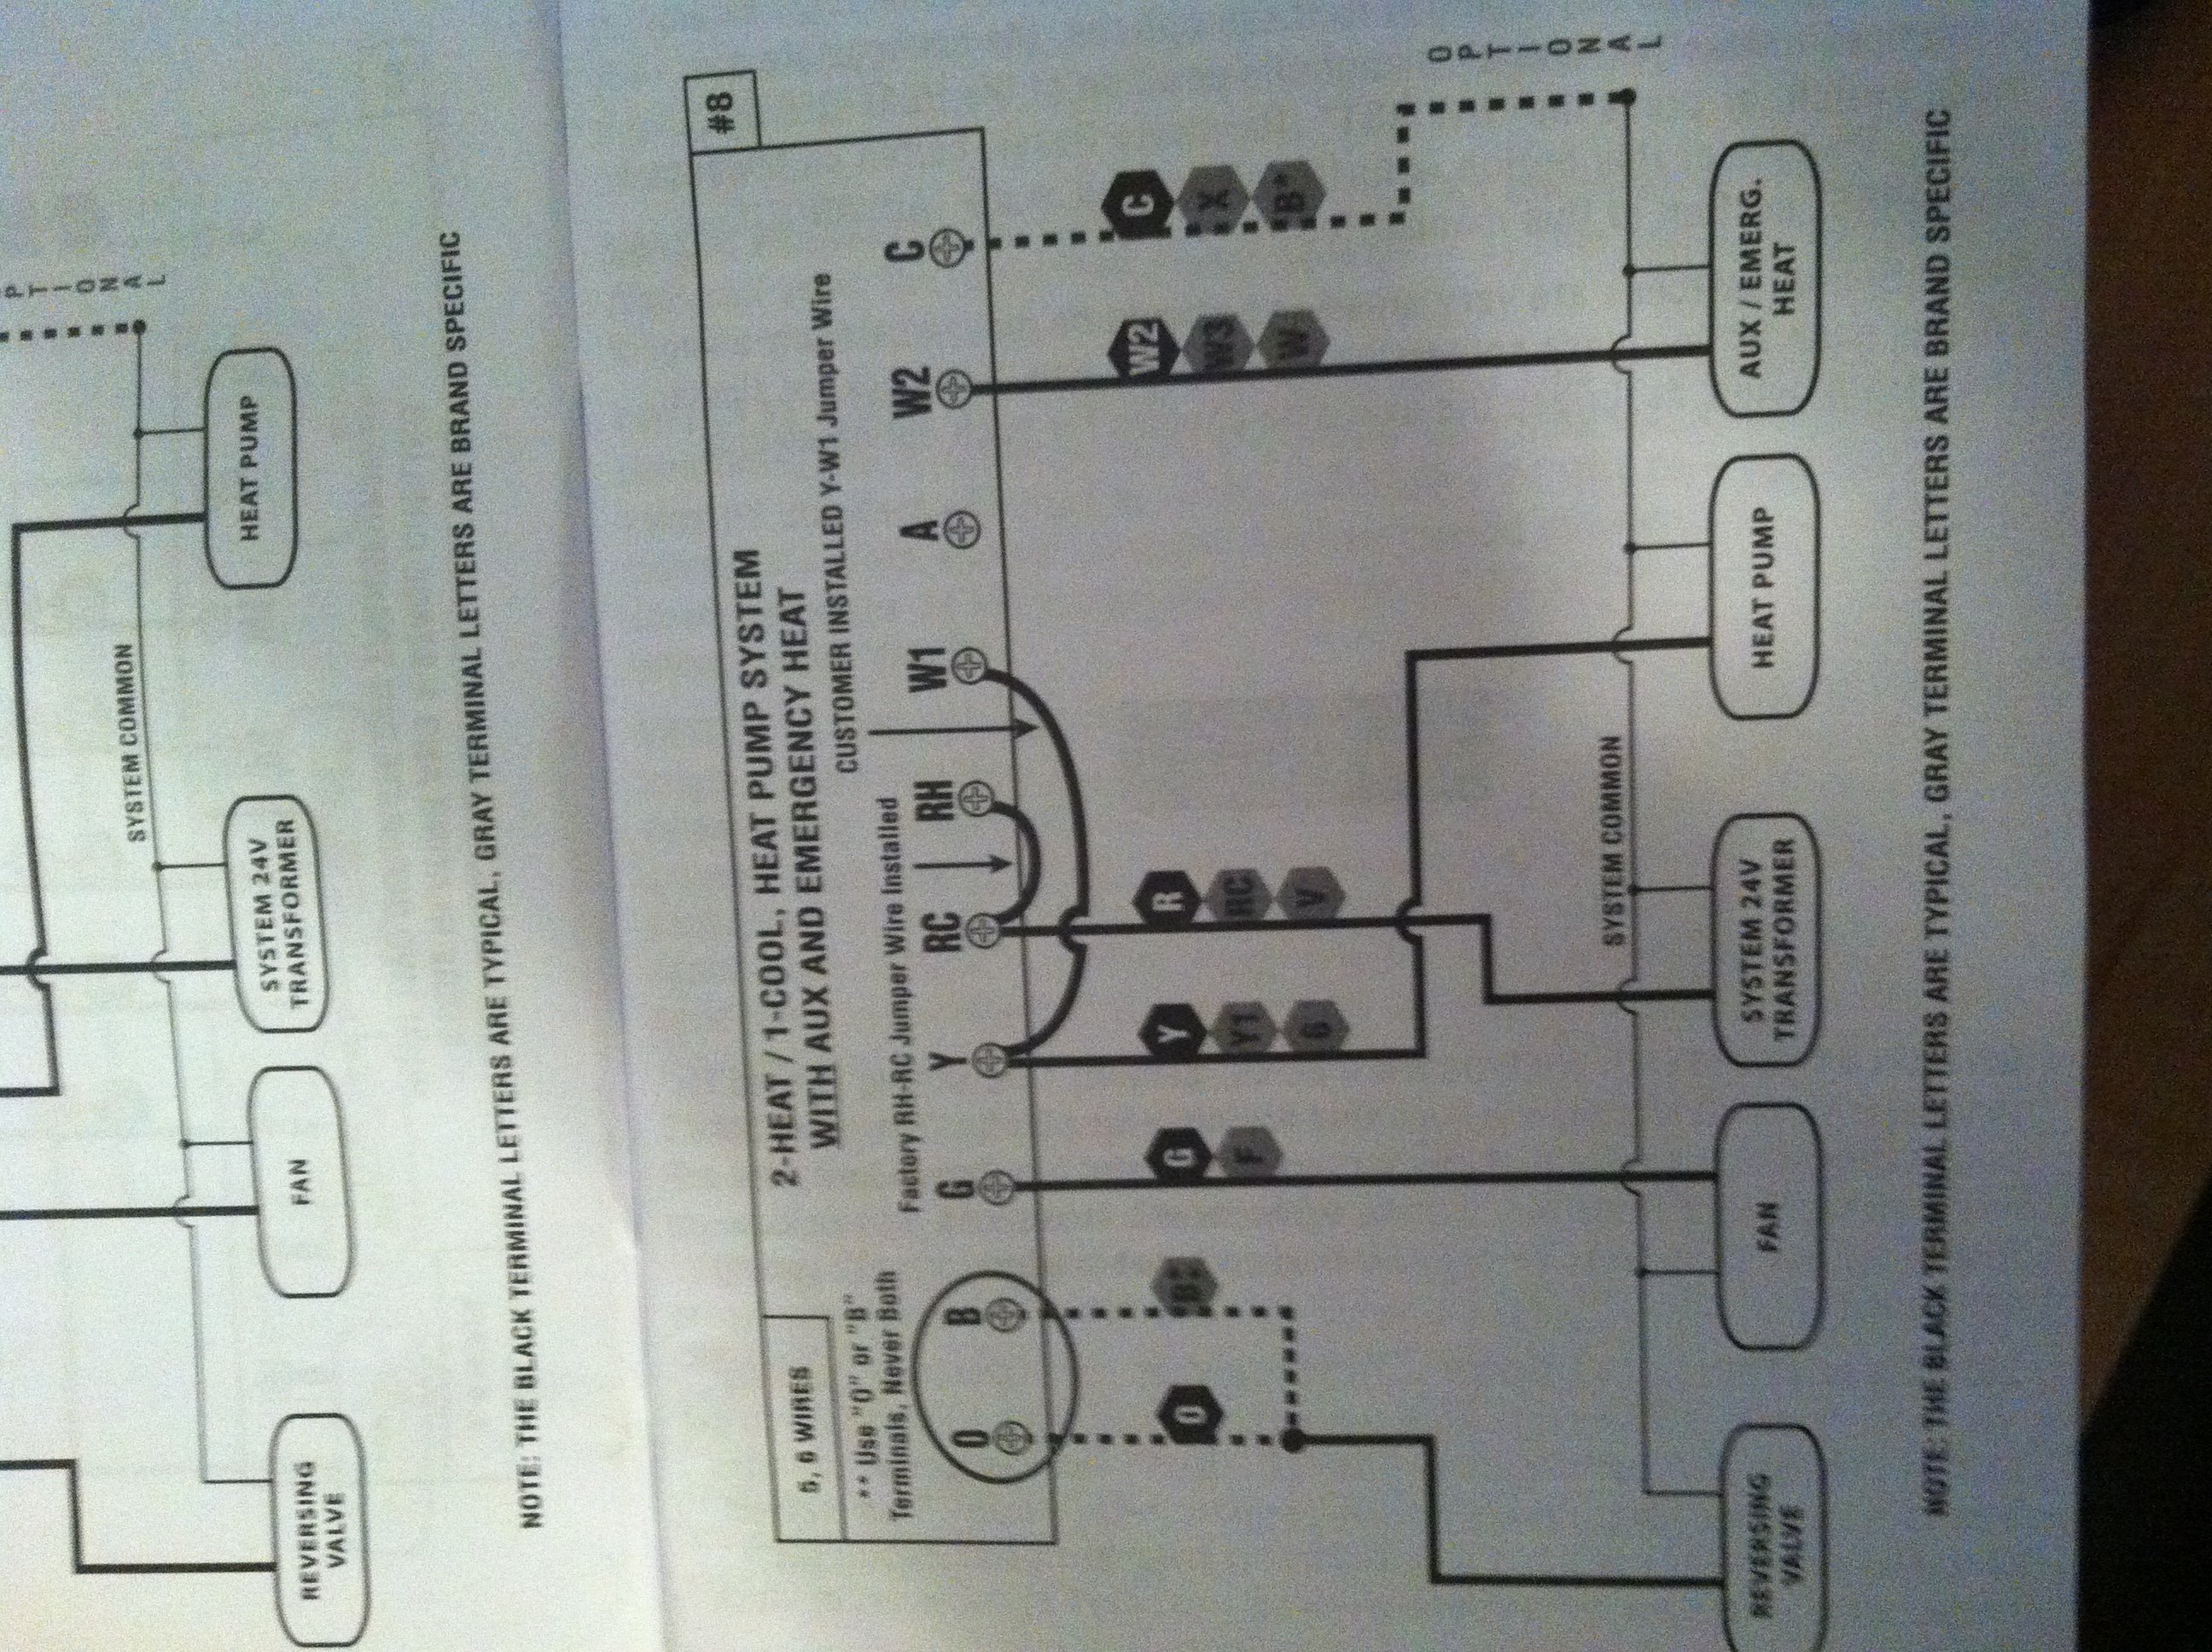 2012 02 04_154651_tx500u_diagram lux tx500e thermostat wiring diagram efcaviation com Lux 500 Thermostat User Manual at crackthecode.co